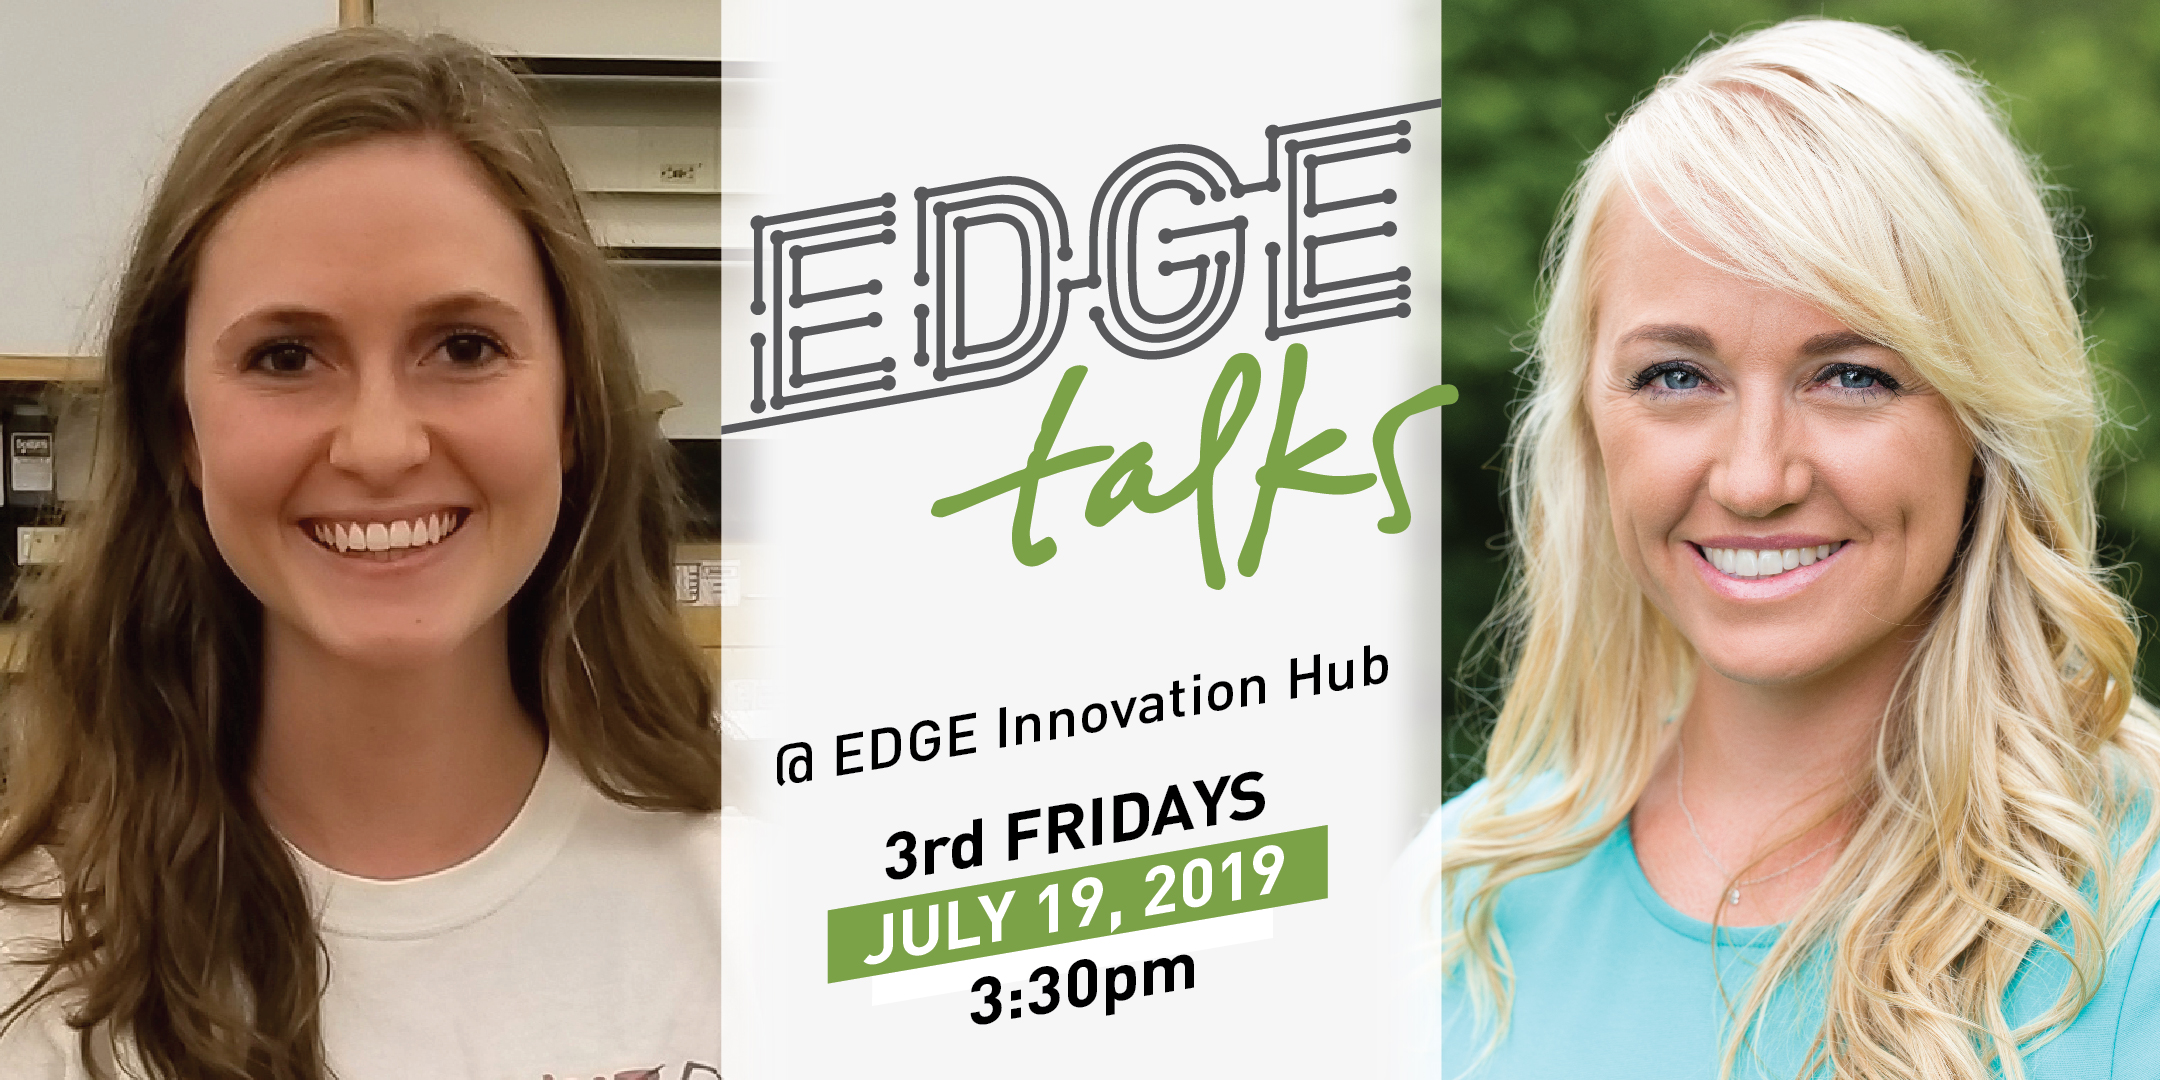 EDGE Talks inspire and connect the food industry > Food industry leaders inspire innovation by sharing their stories. > Food industry partners connect and expand their network.